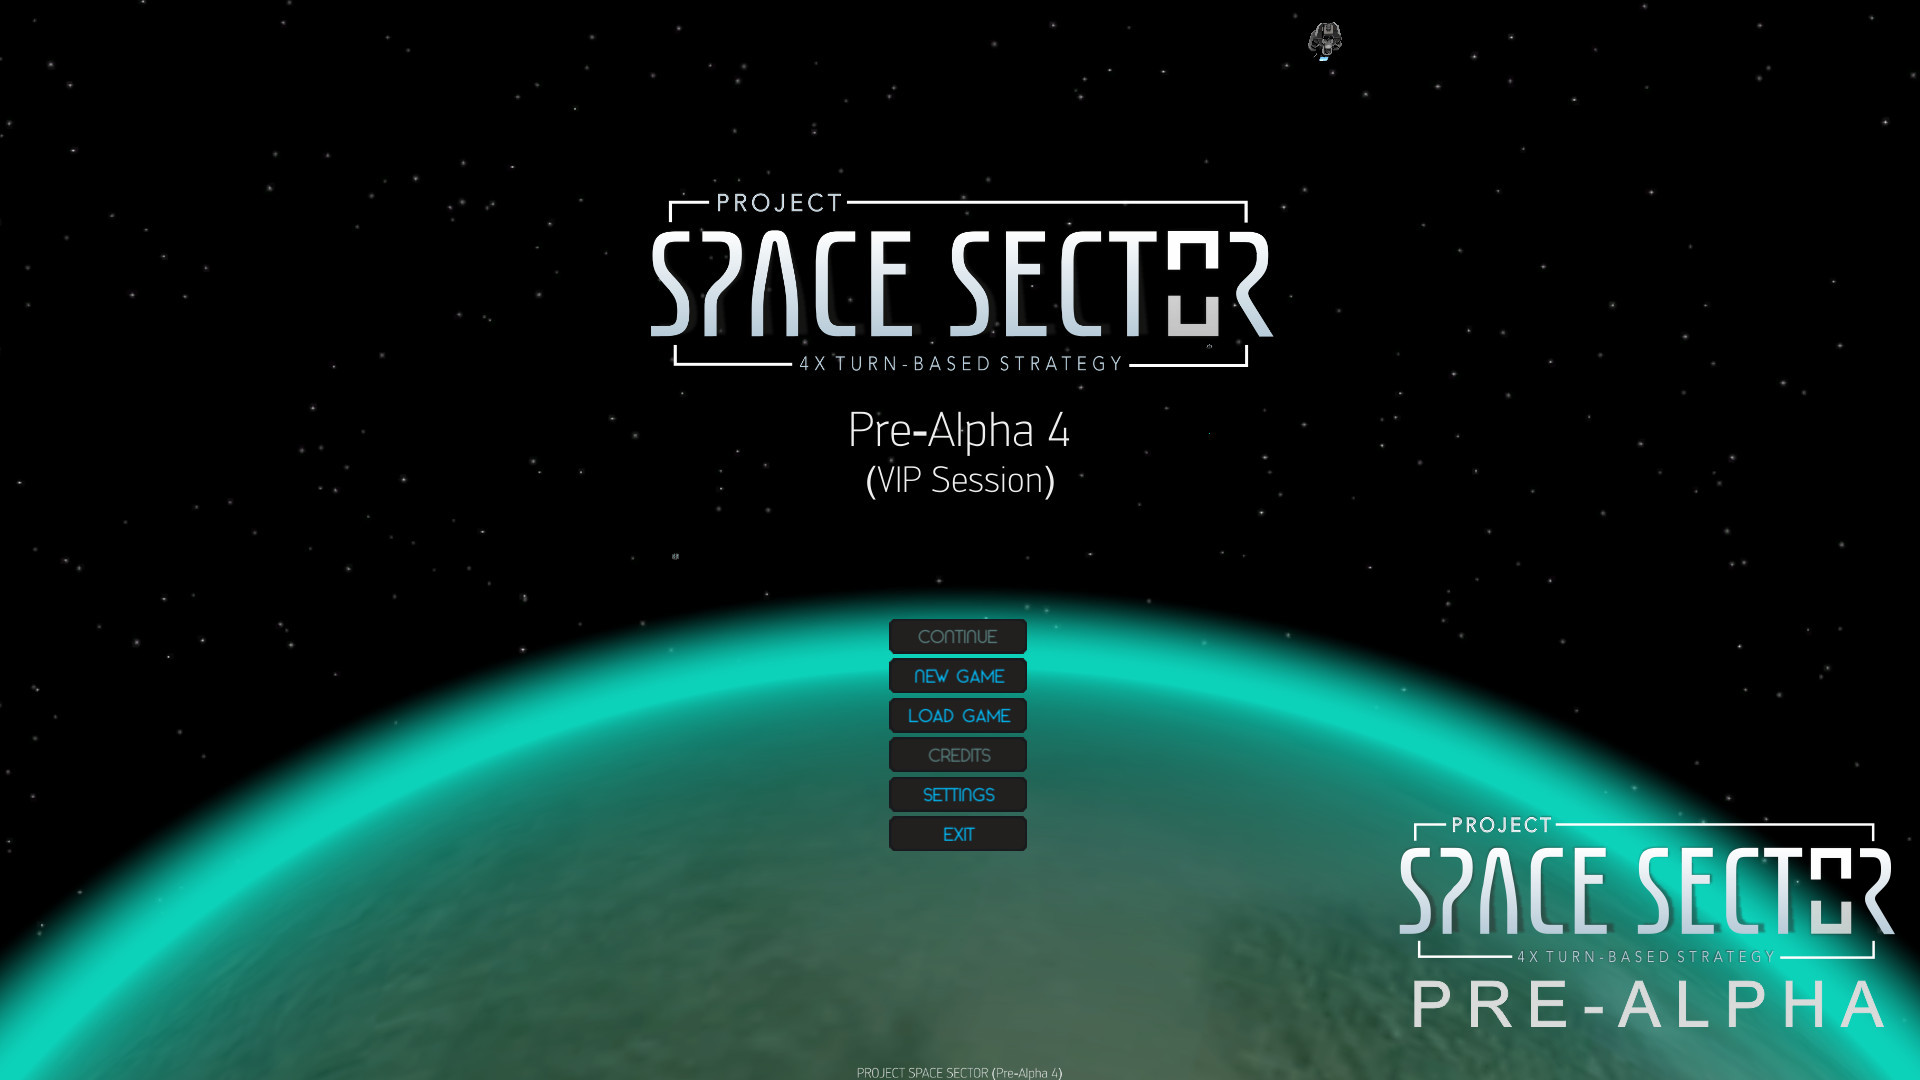 Project Space Sector State Of The Game And Call For VIPs - Game menu design